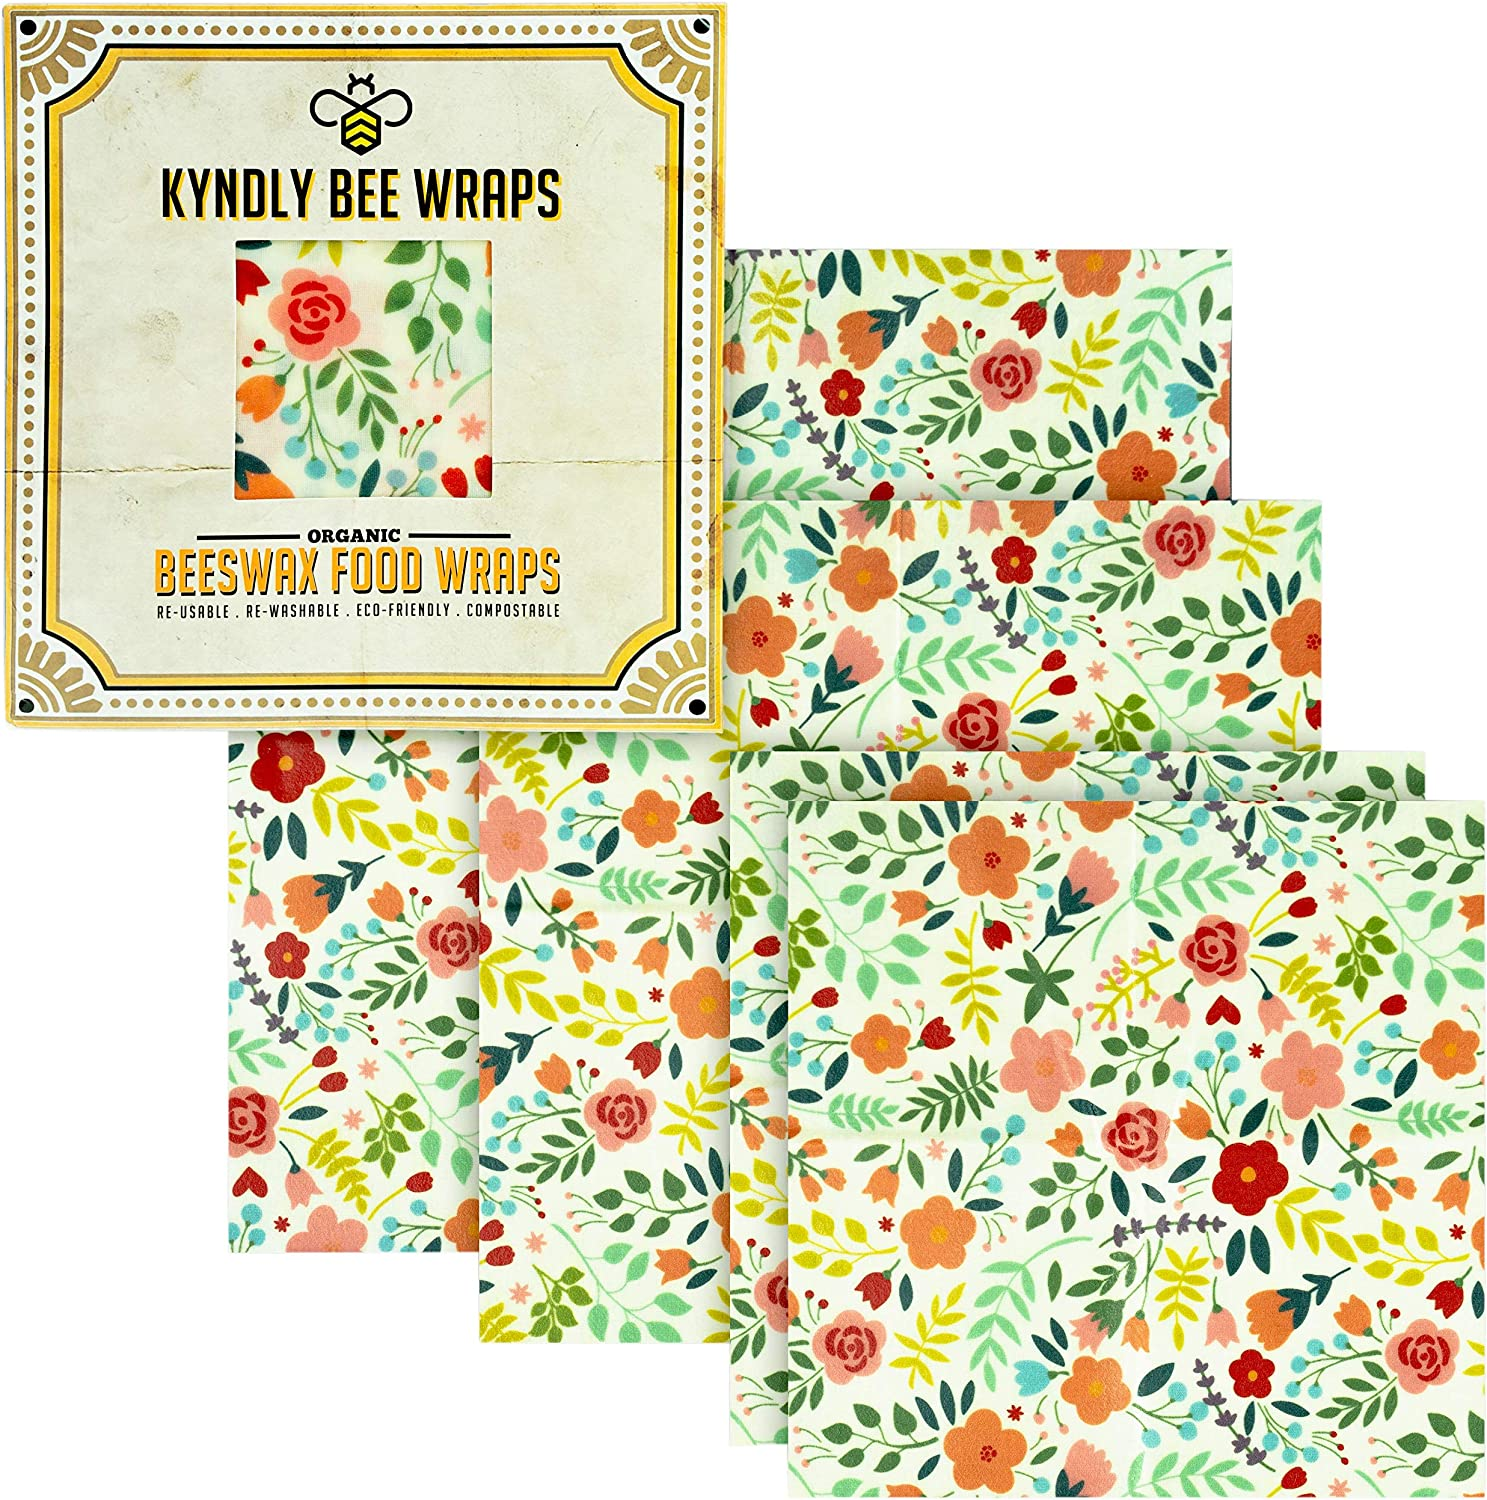 KYNDLY Beeswax Food Wrap, 4 Pack Eco-Friendly Reusable Wrappers. 100% Organic Cotton, Non Toxic, All Natural Food Grade Storage. Sustainable, Compostable and Biodegradable. 2xS 1xM 1xL (CLASSIC)